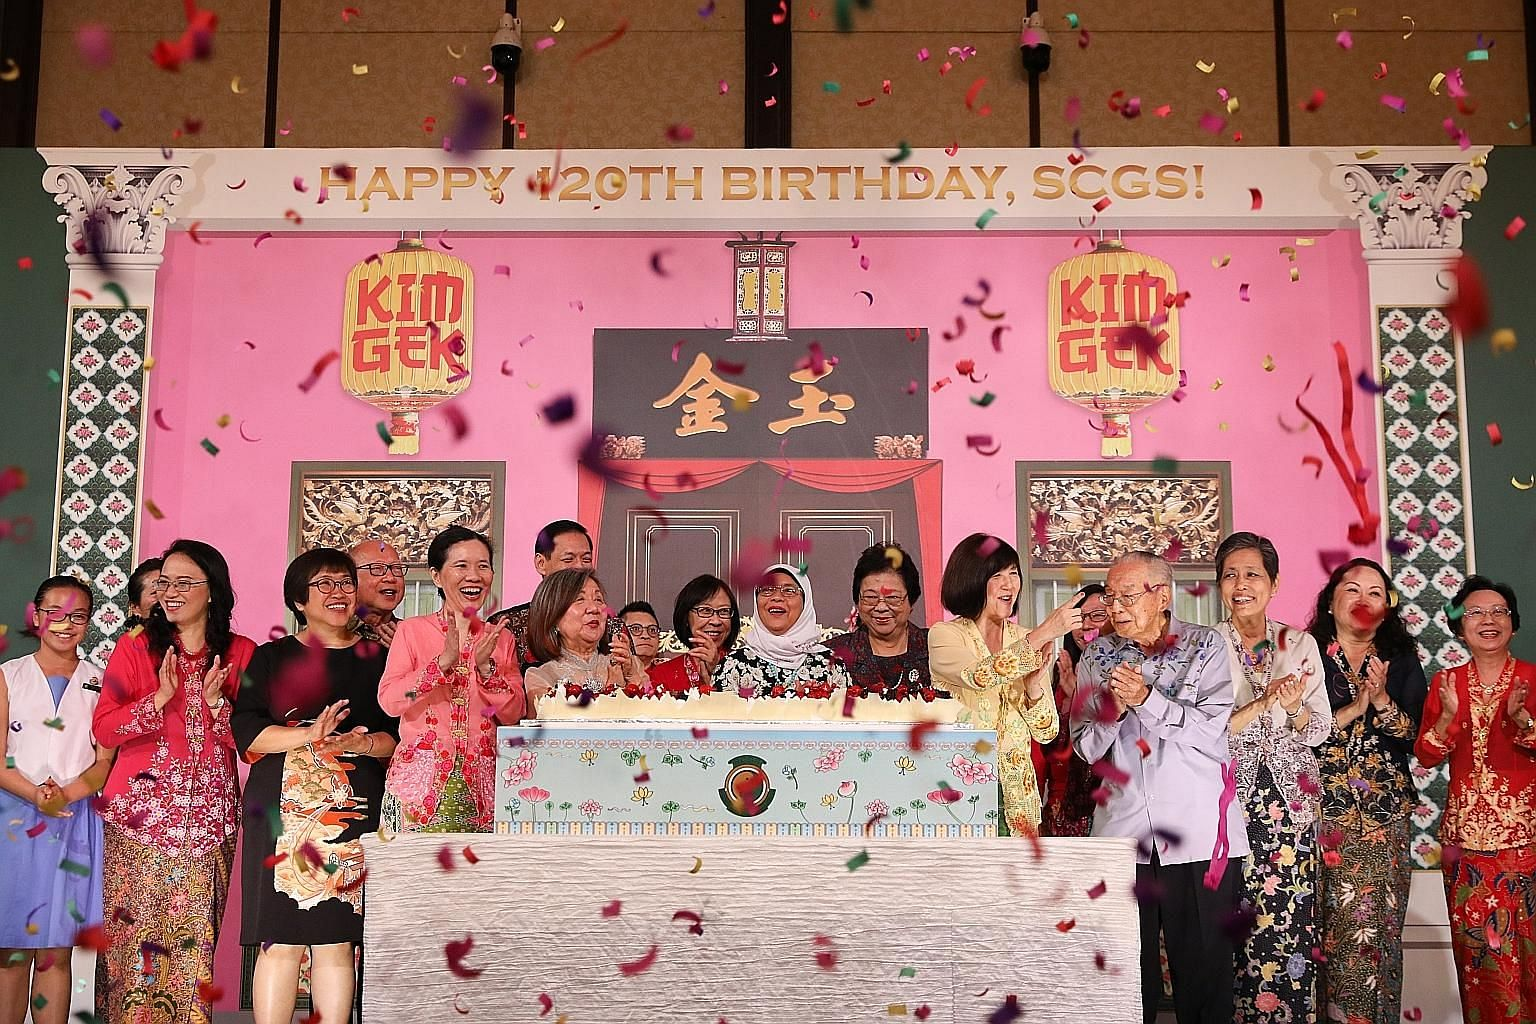 President Halimah Yacob (centre) celebrating Singapore Chinese Girls' School's 120th birthday last night, together with fellow SCGS alumni and other guests, including representatives of the SCGS board and staff. ST PHOTO: ONG WEE JIN